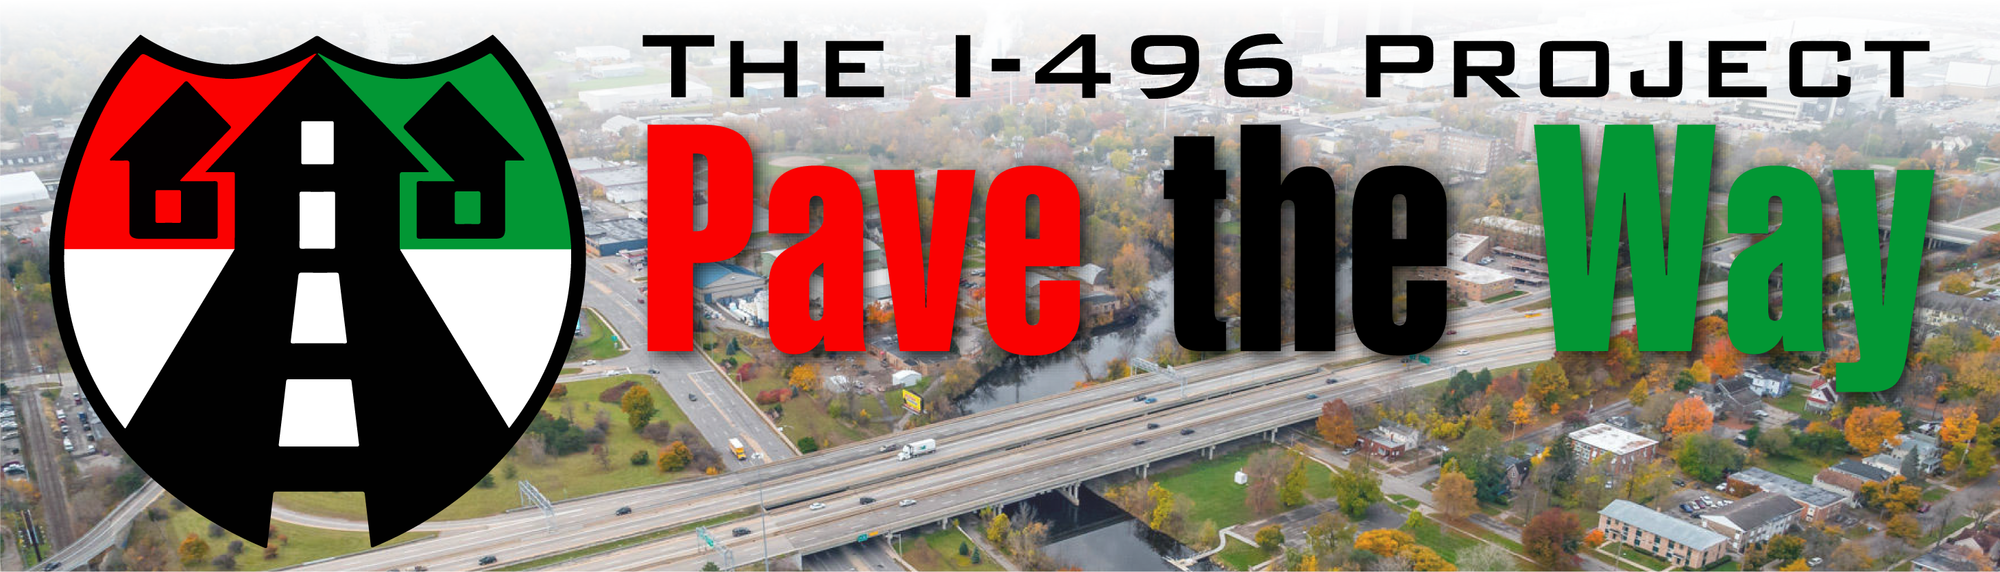 I-496 Project - Pave the Way